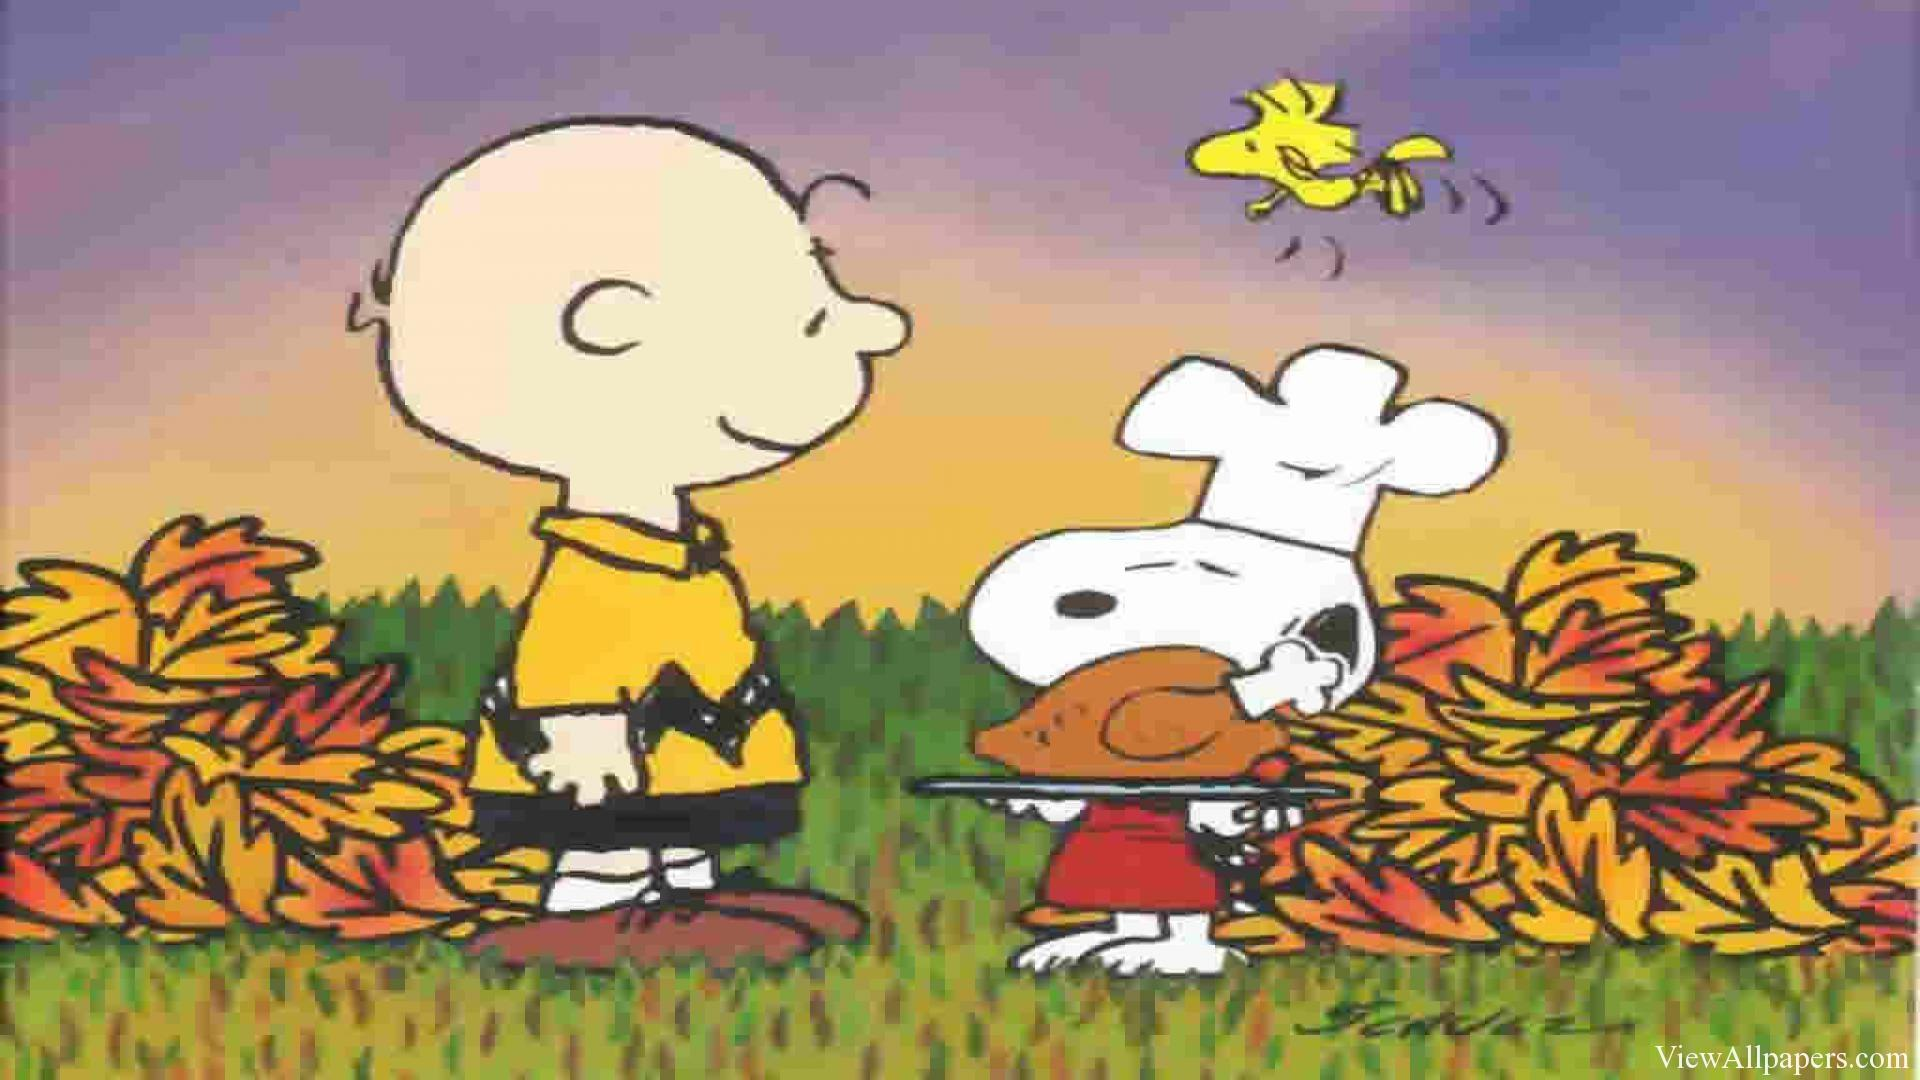 Download Free Charlie Brown Wallpaper Hd Backgrounds